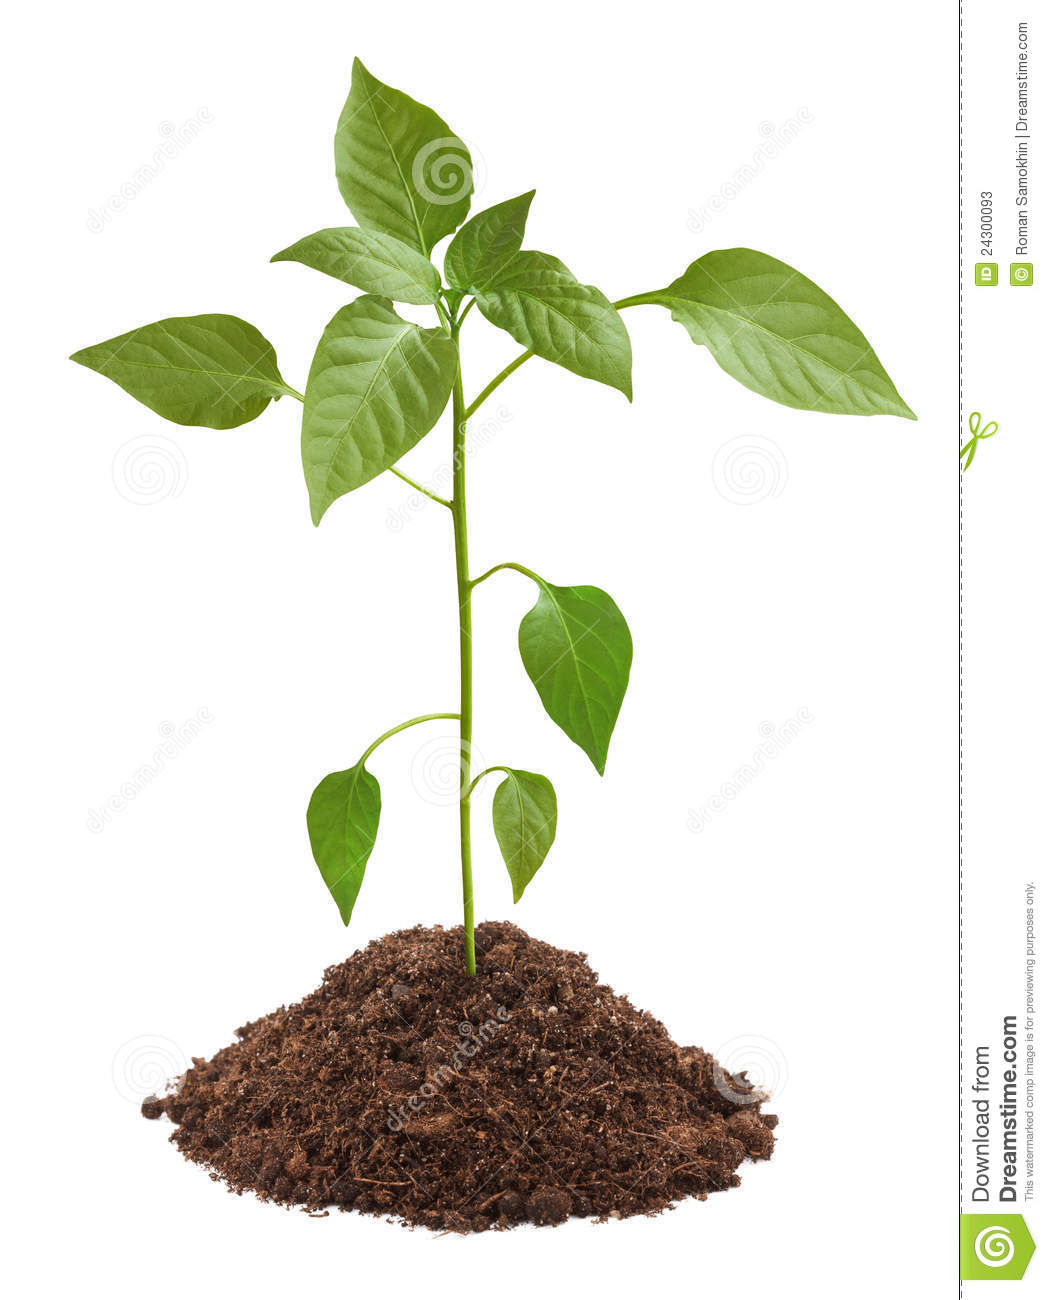 Young green plant in soil stock photos image 24300093 for Soil and green